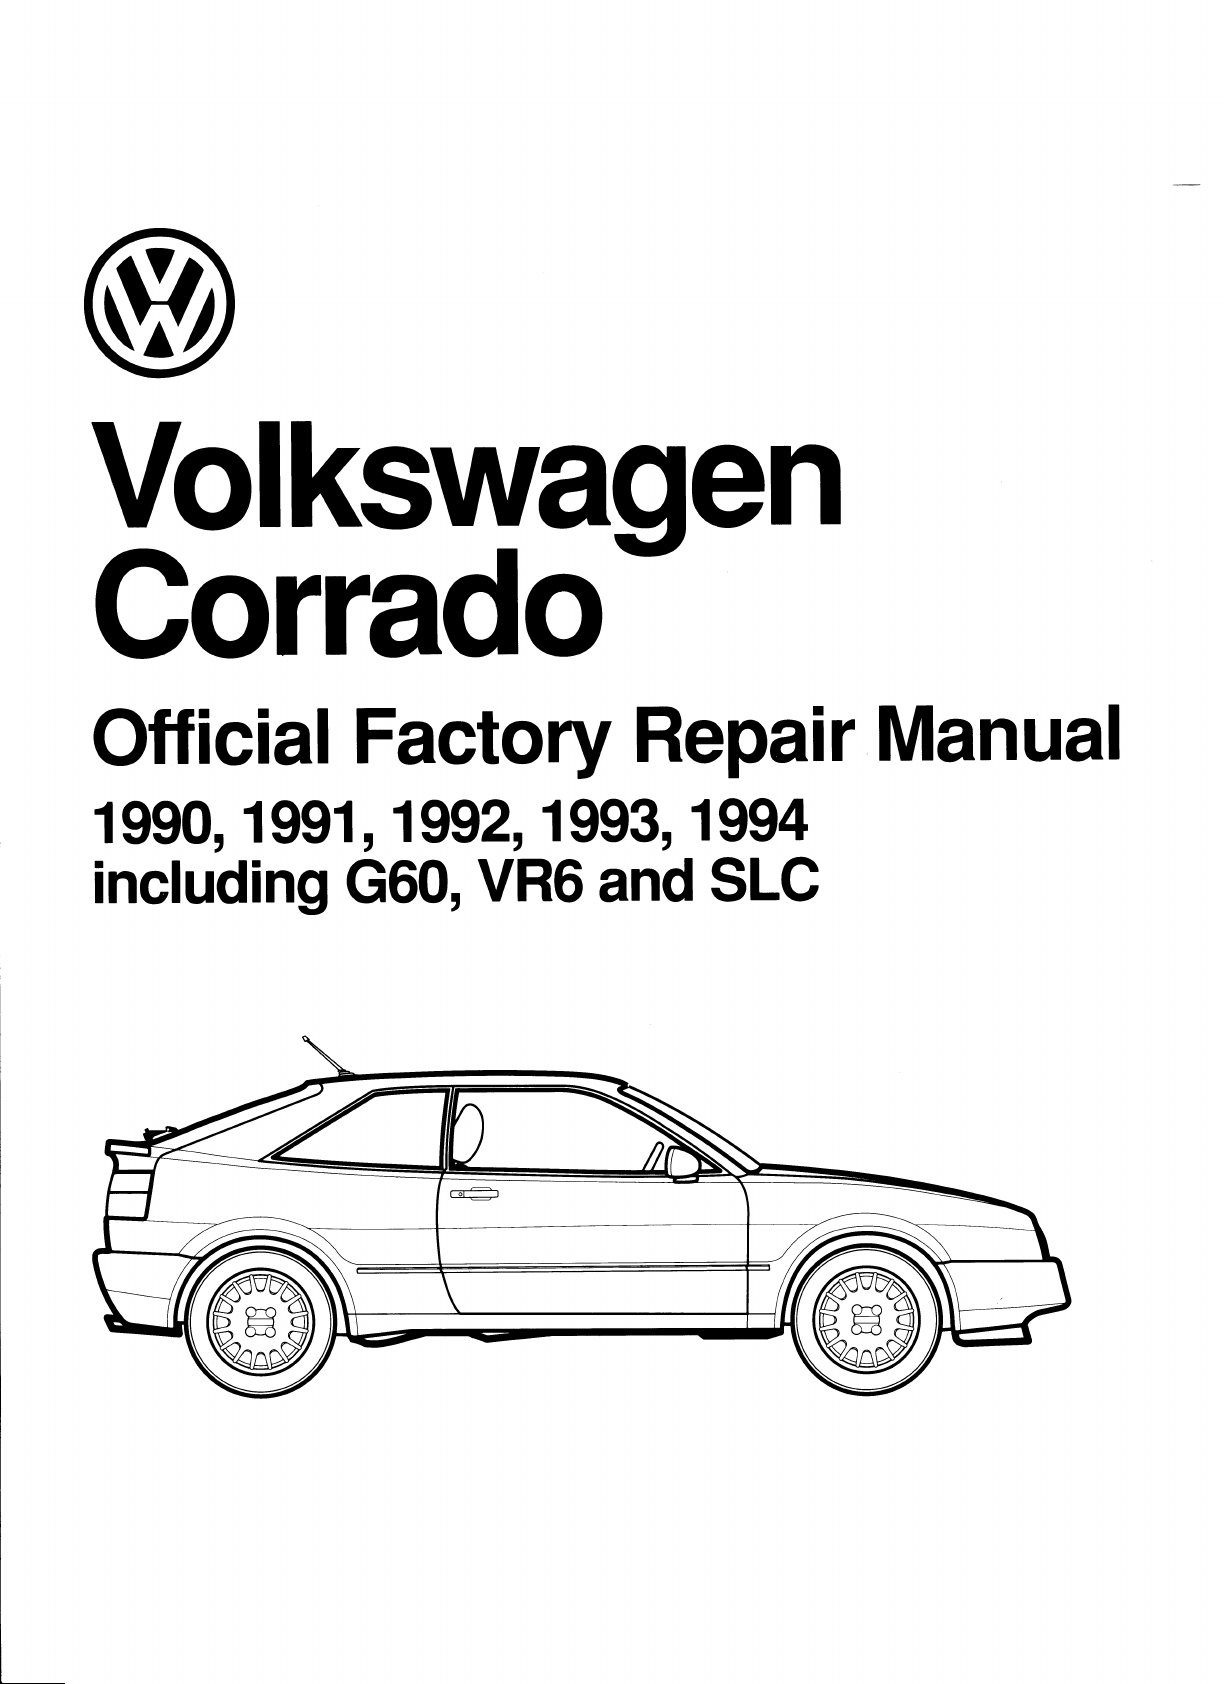 Volkswagen Corrado 1990 1994 Workshop Manual PDF